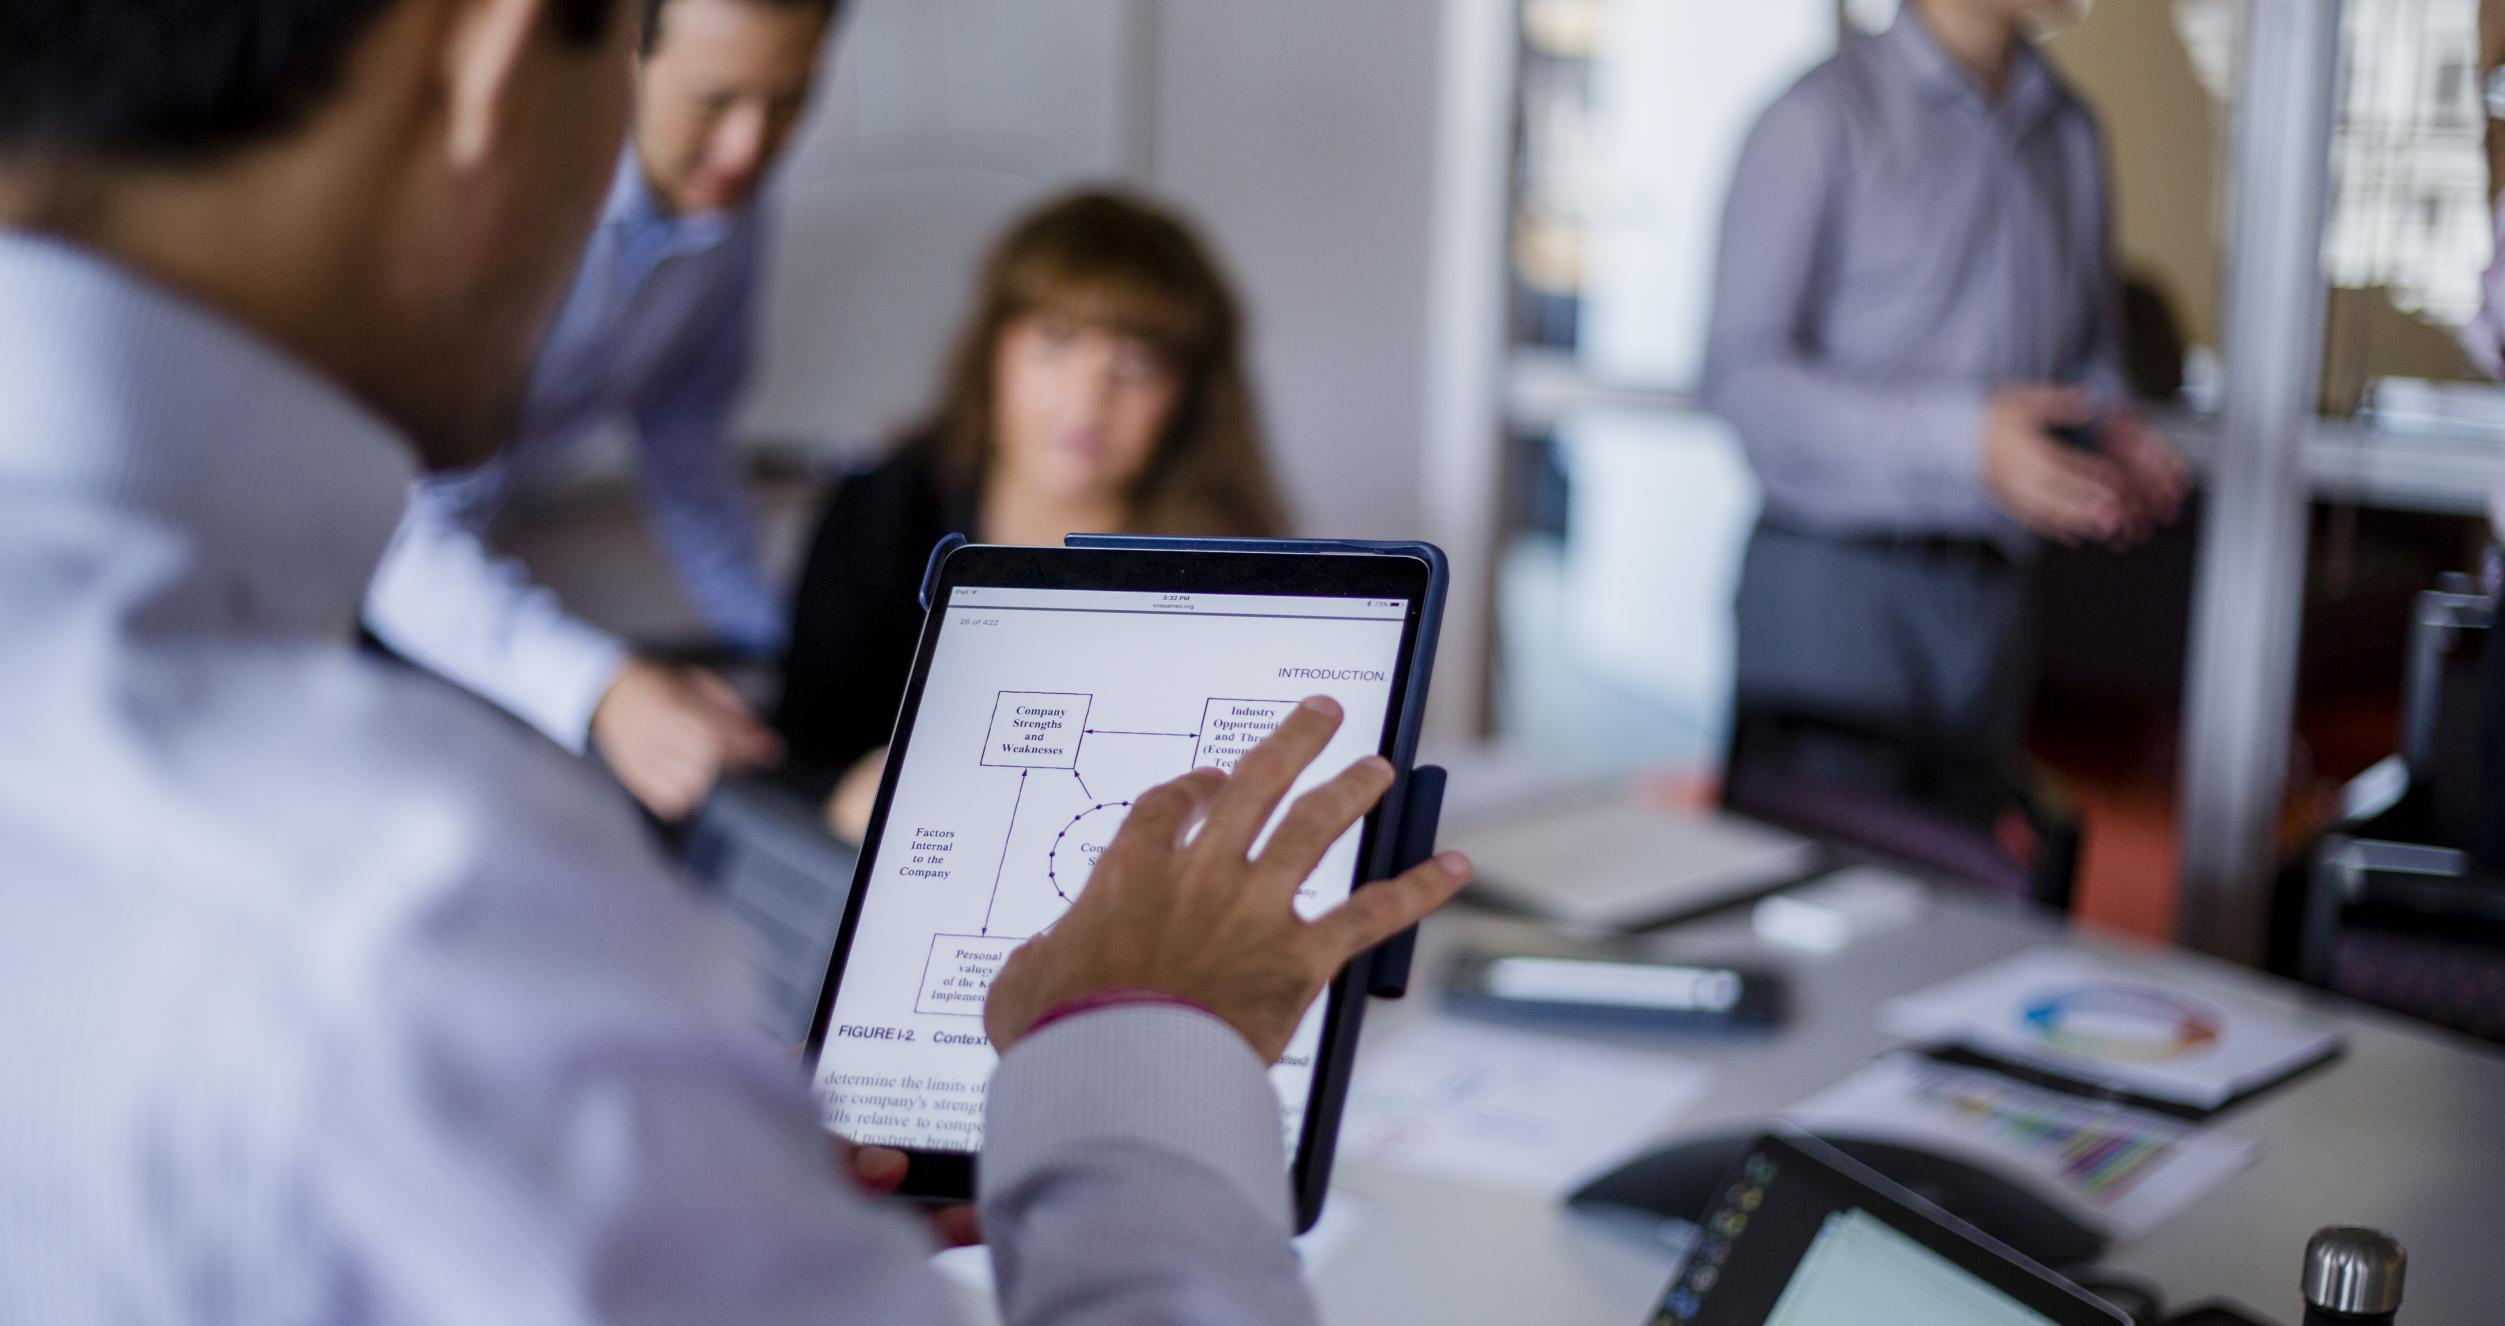 Image of a small meeting, we see over the shoulder of a man holding a tablet, and in the background are 3 other employees.